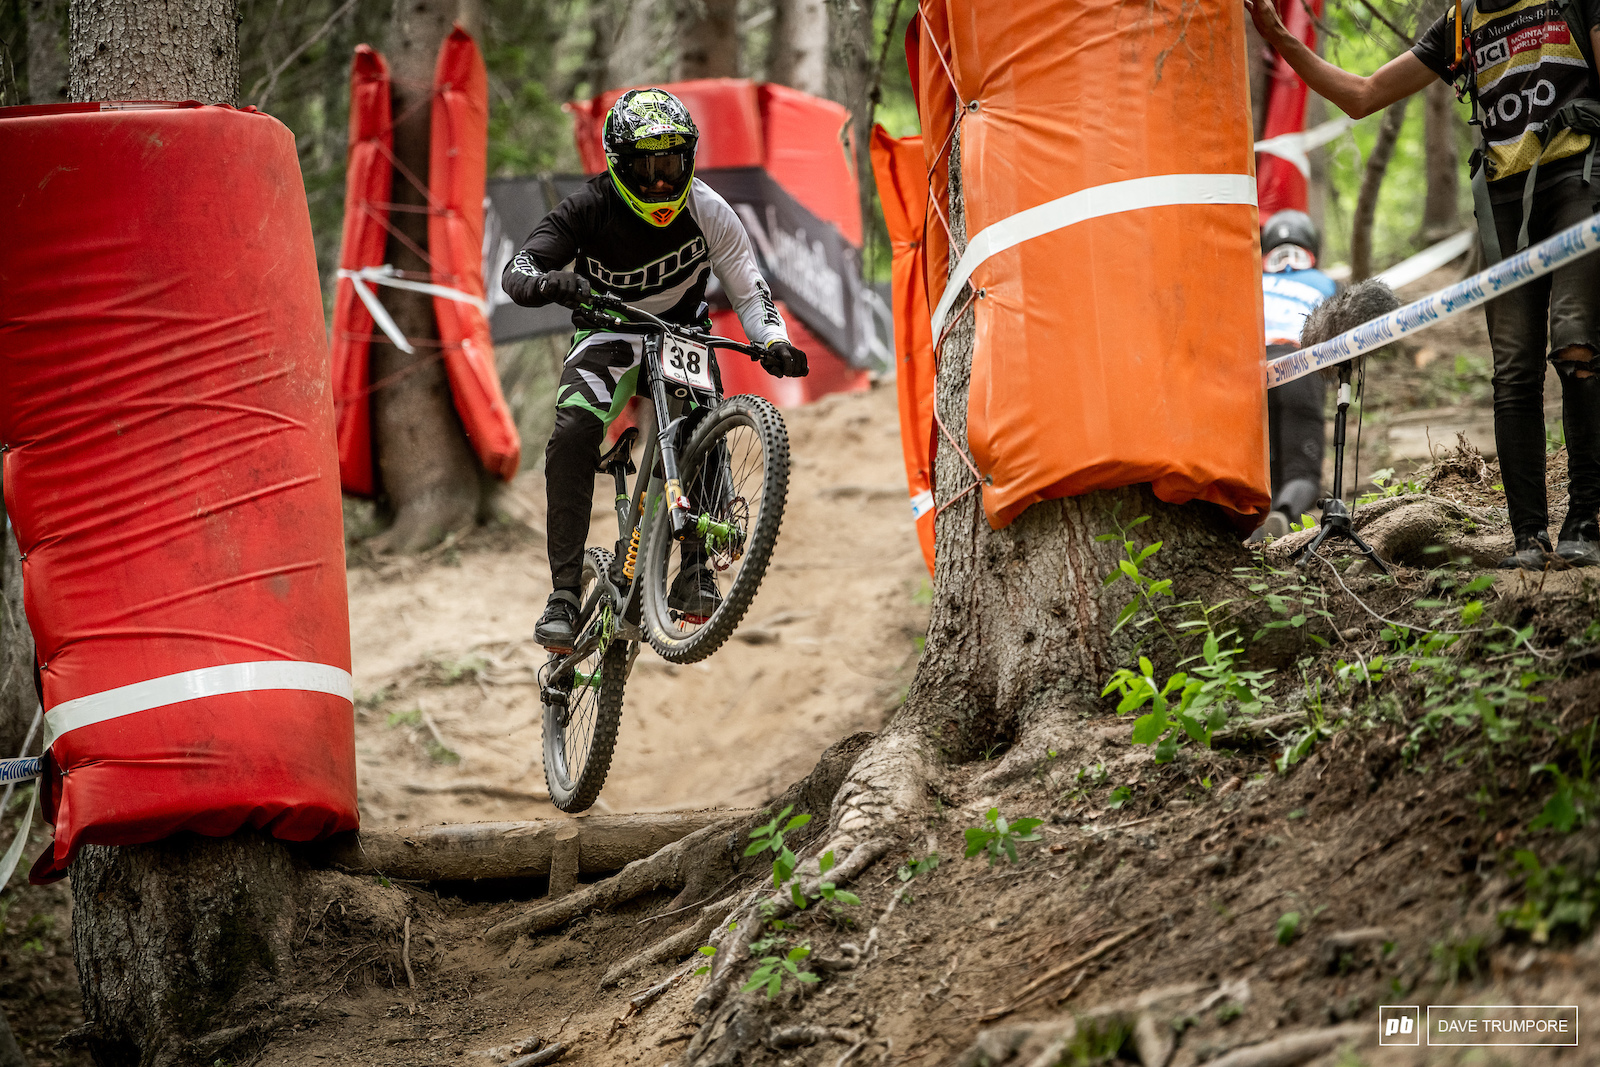 Adam Brayton giving it a yank over the roots to setup on the off camber before dropping into a part pdf switchbacks.